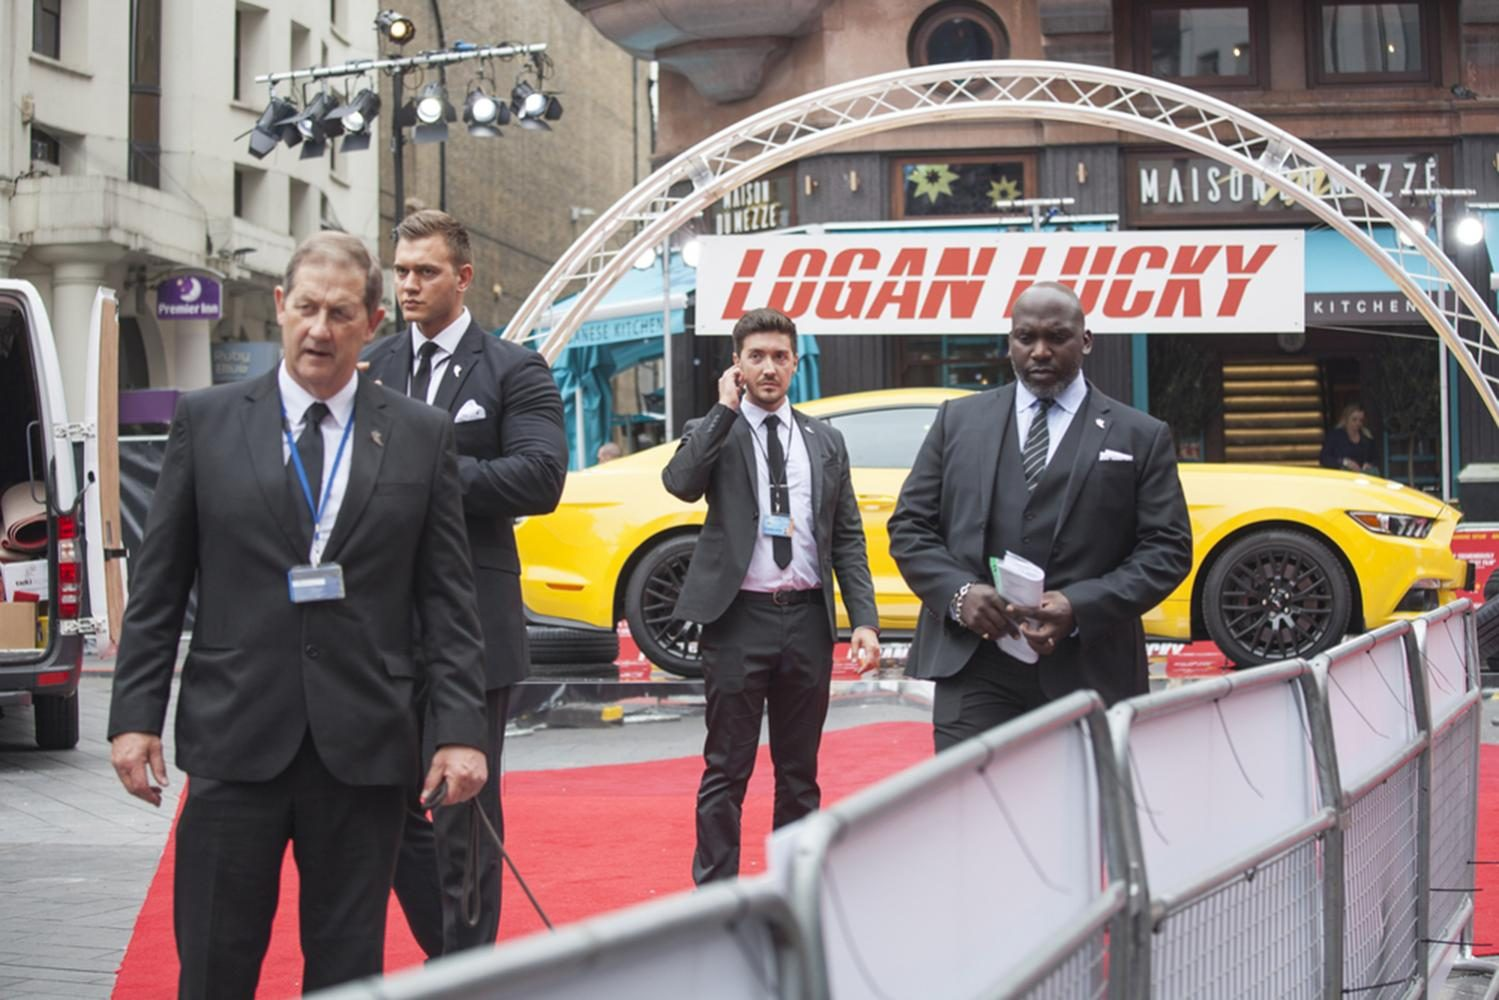 London, UK - 21 of August 2017 The premiere for Logan Lucky will take place on Monday 21 August at VUE West End Cinema.